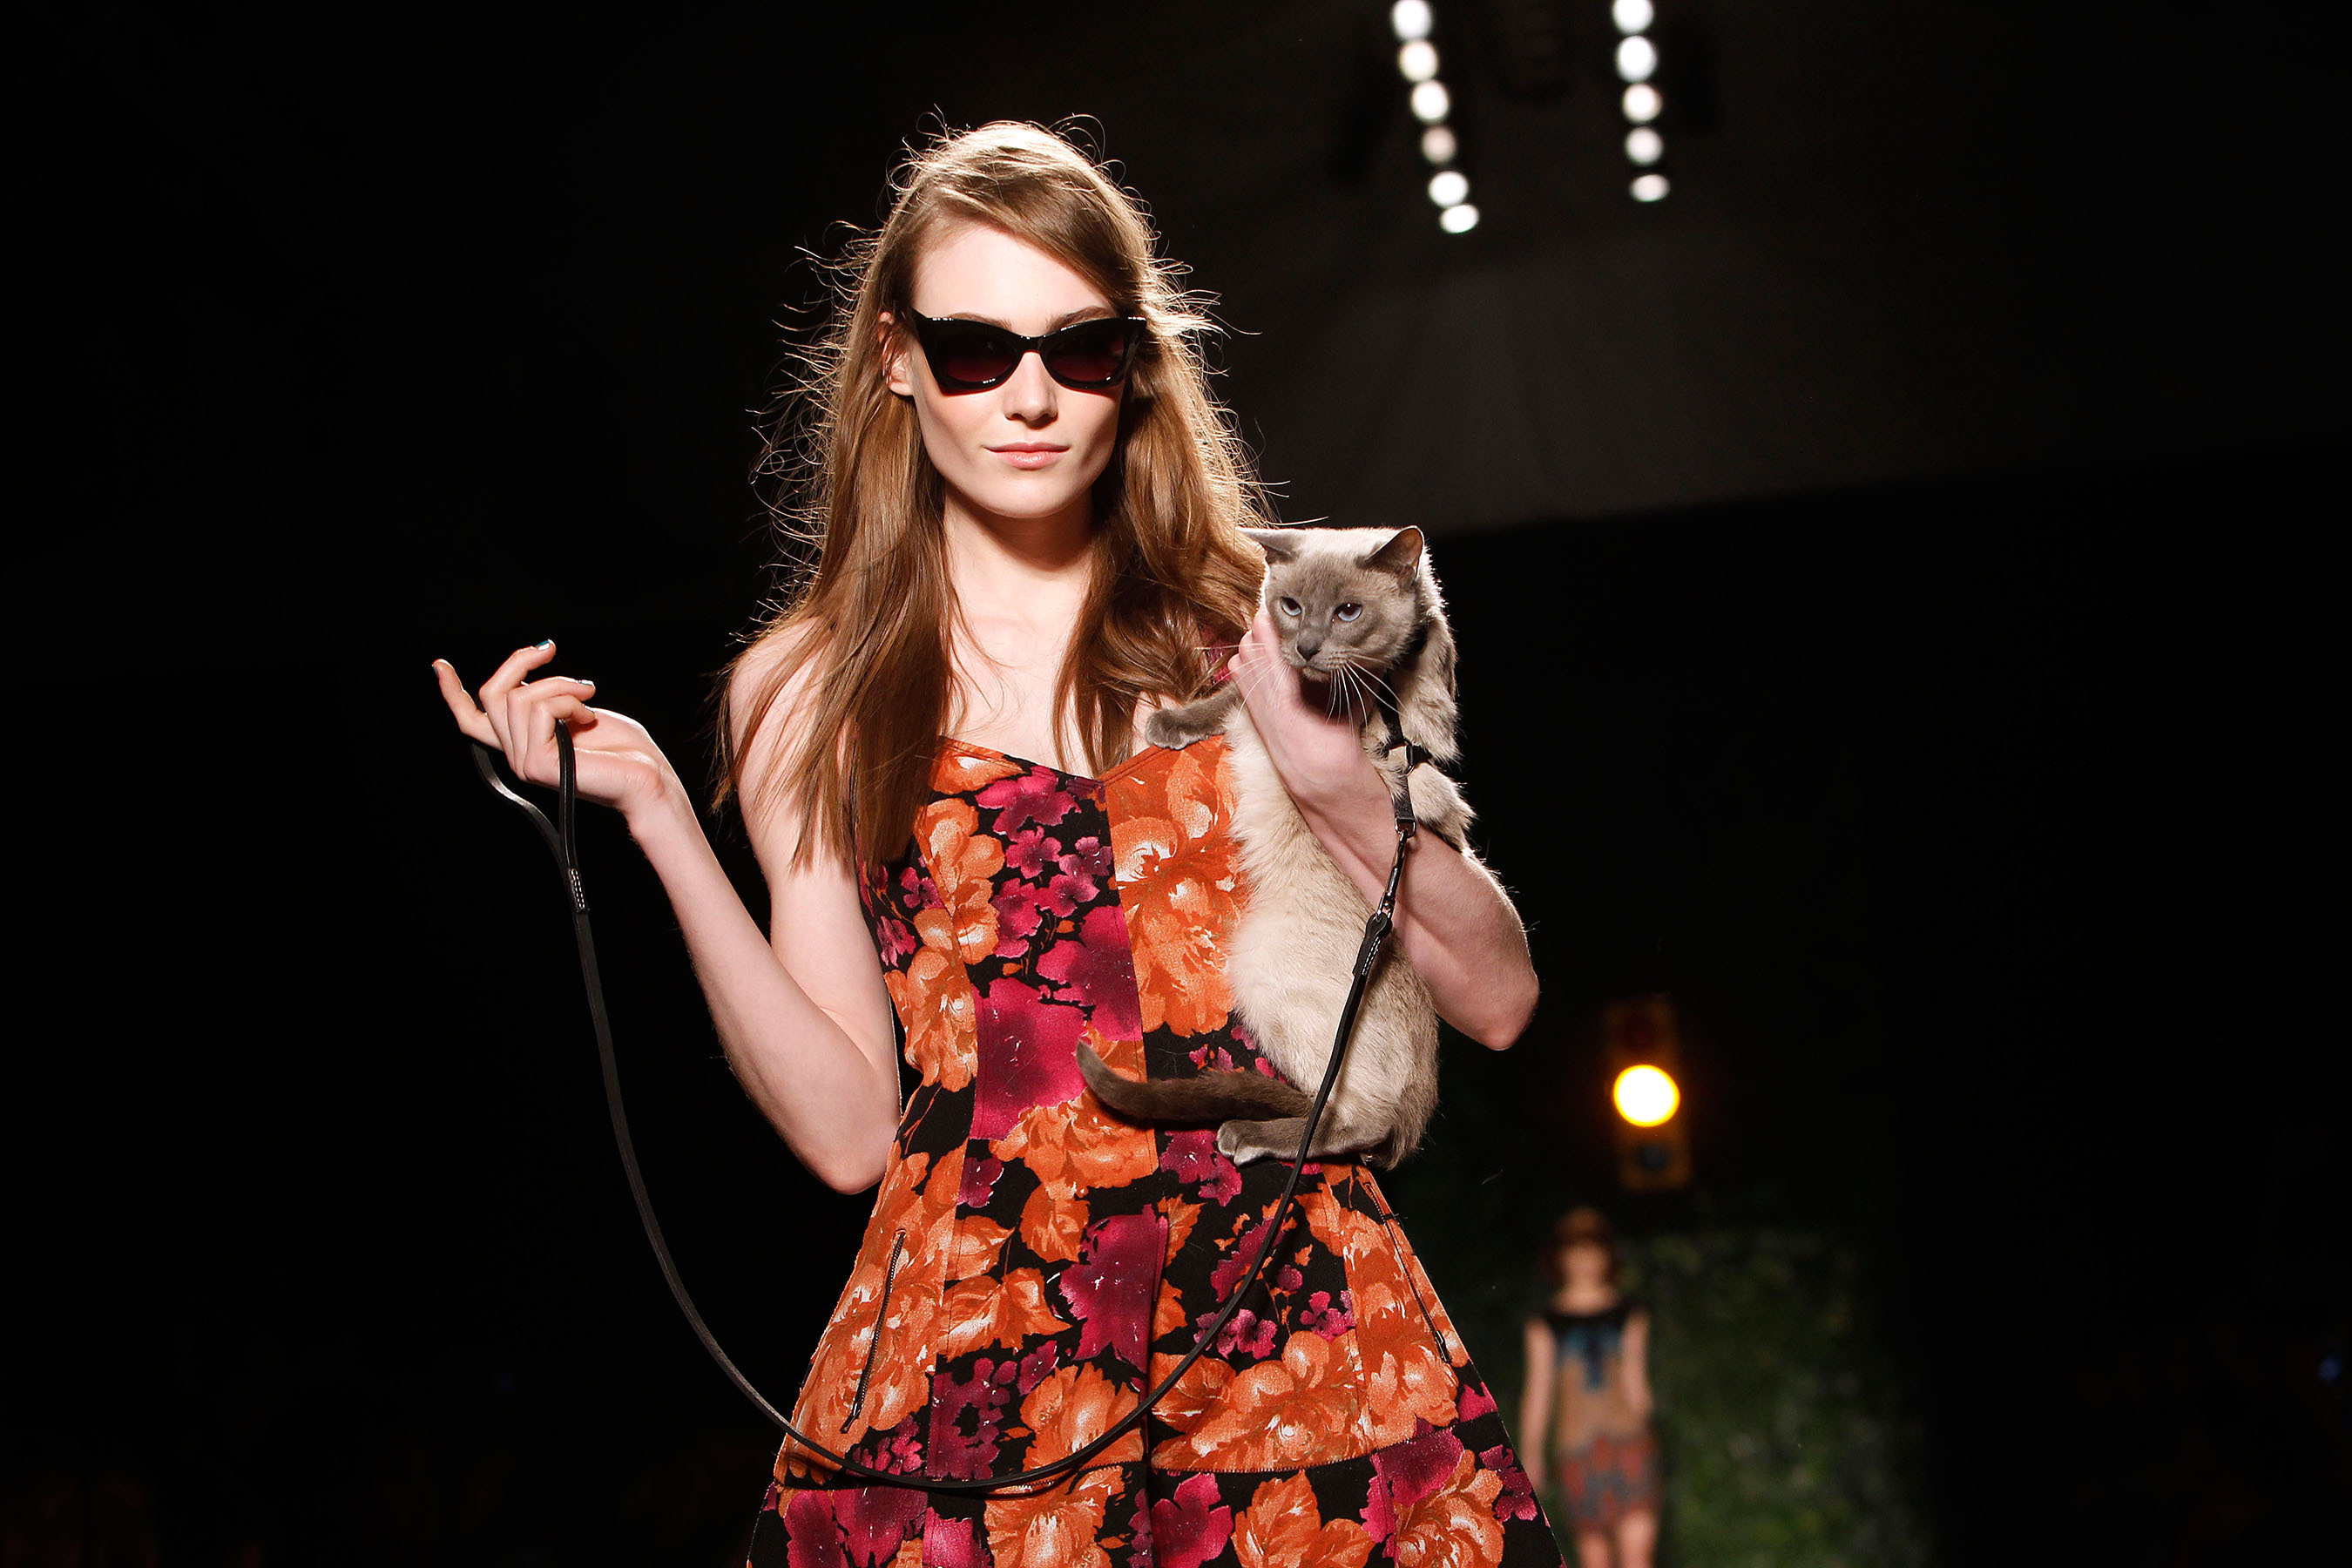 Purina ONE launches True Nature of Cats with a leash-trained cat at  New York Fashion Week.  (PRNewsFoto/Purina ONE)